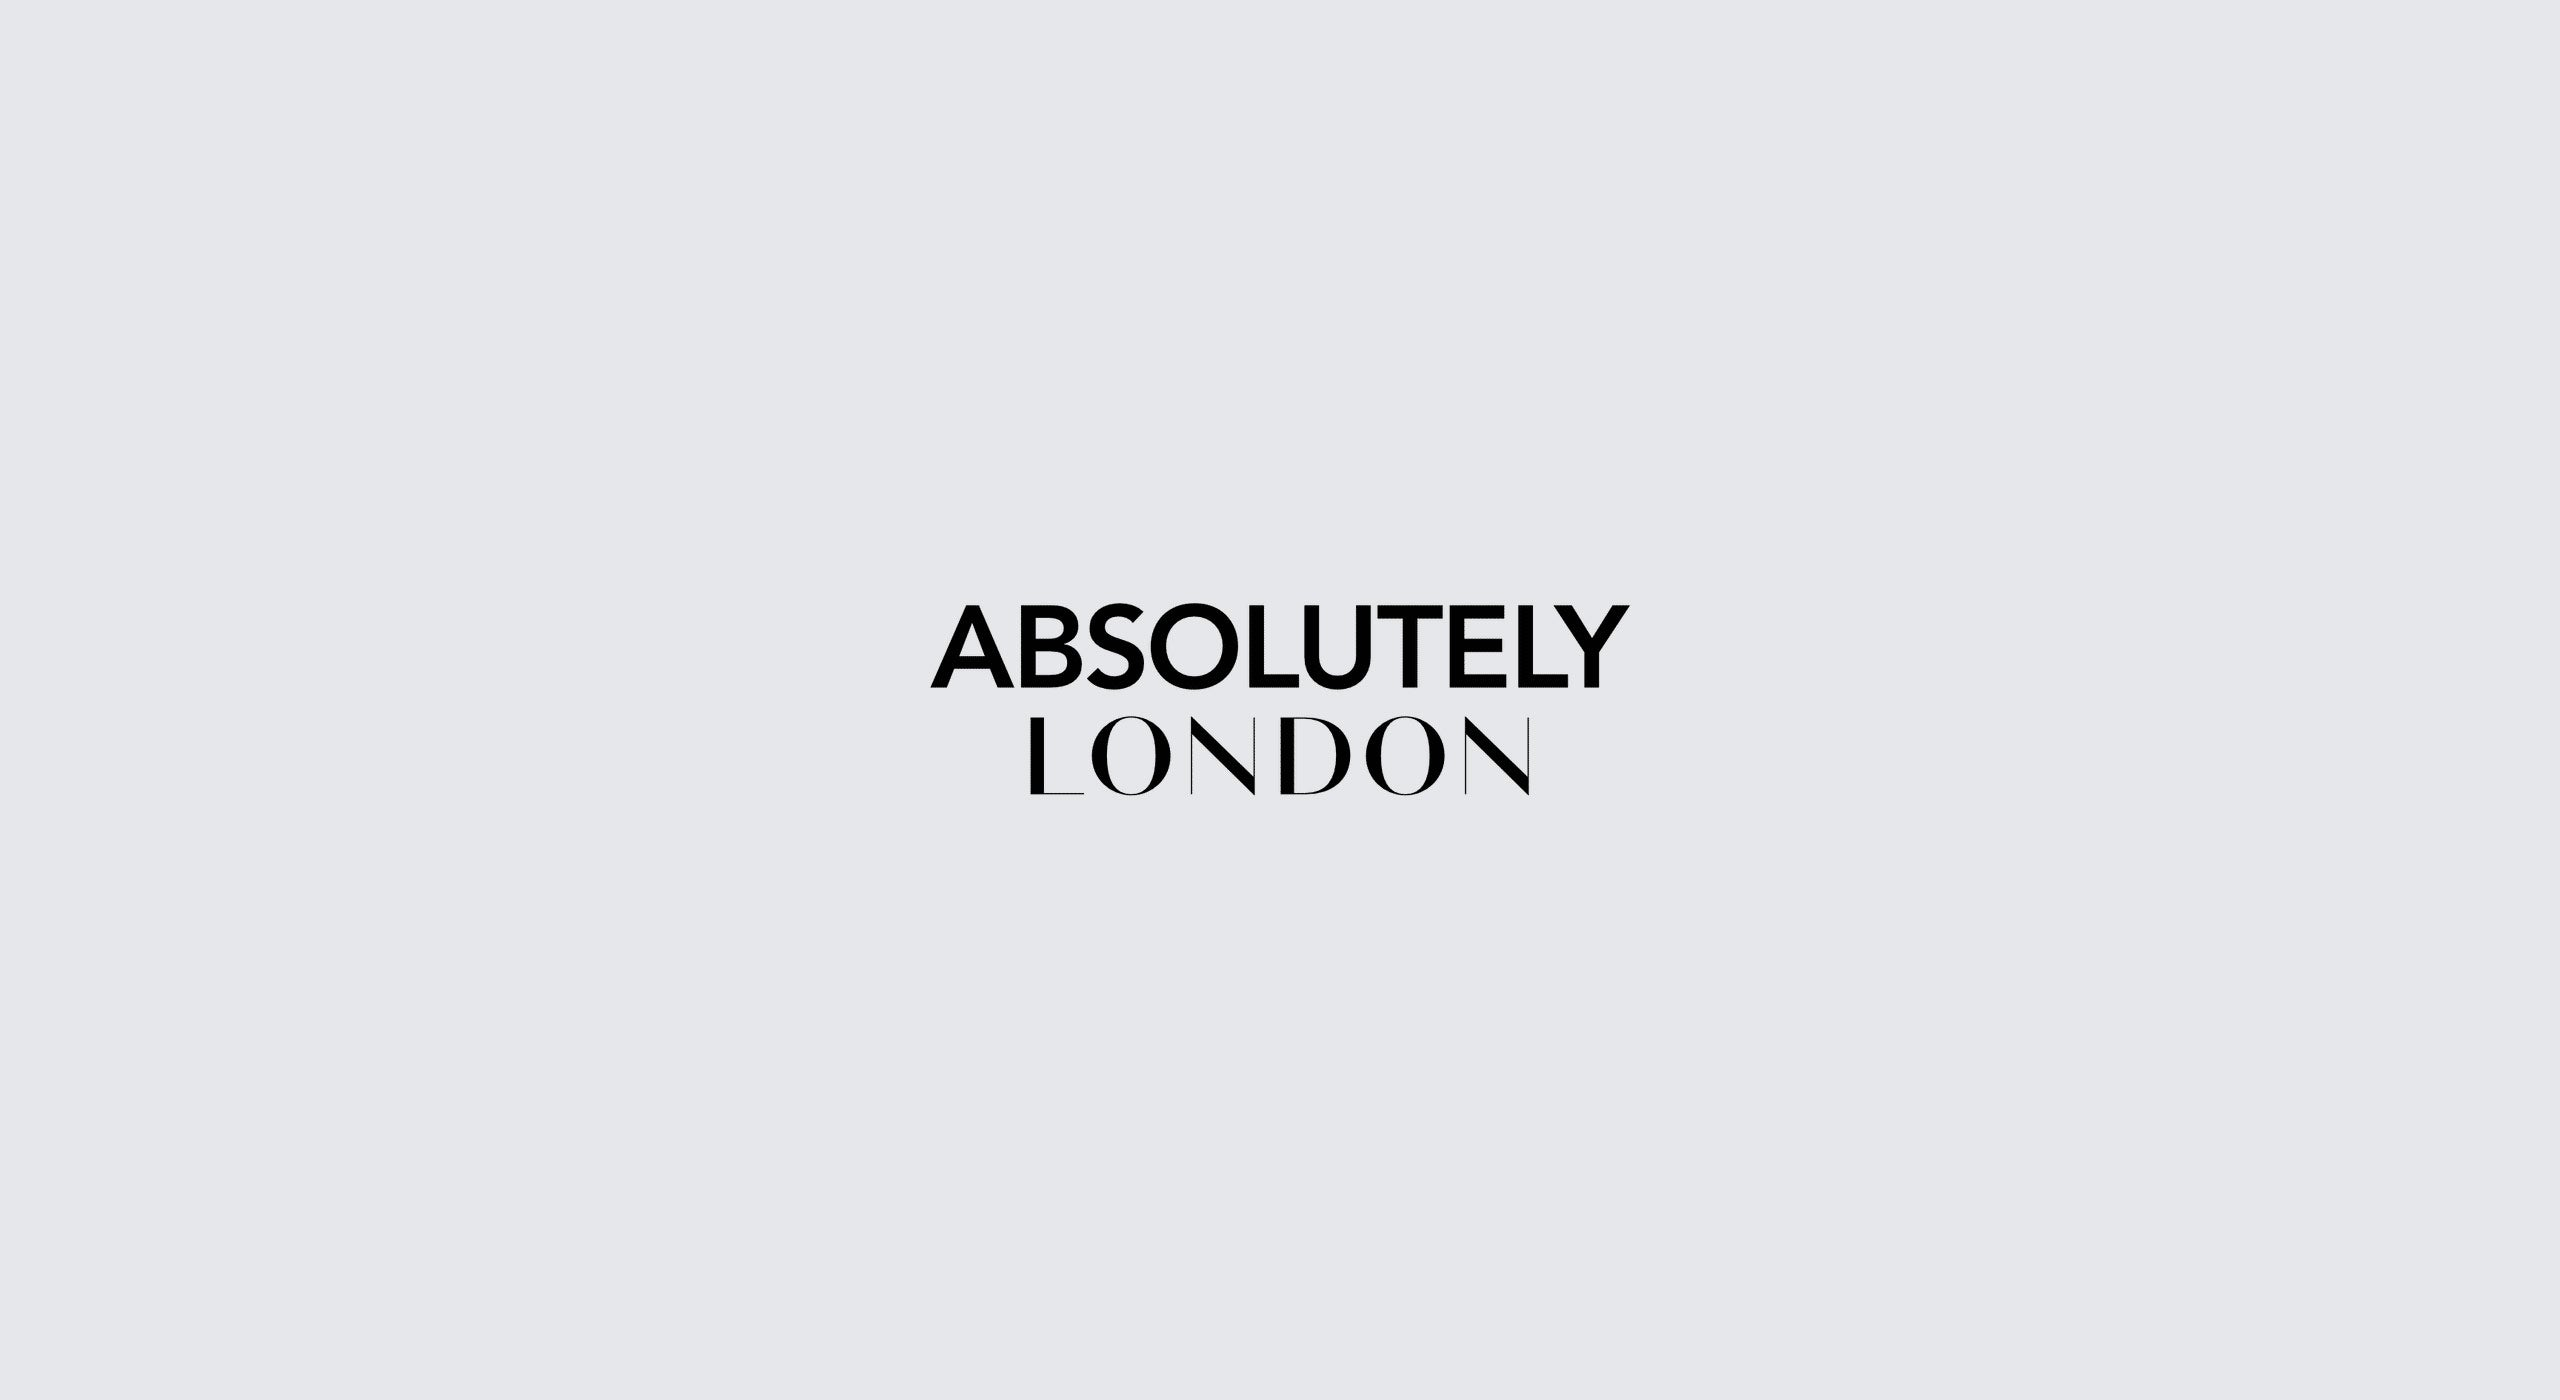 absolutely london